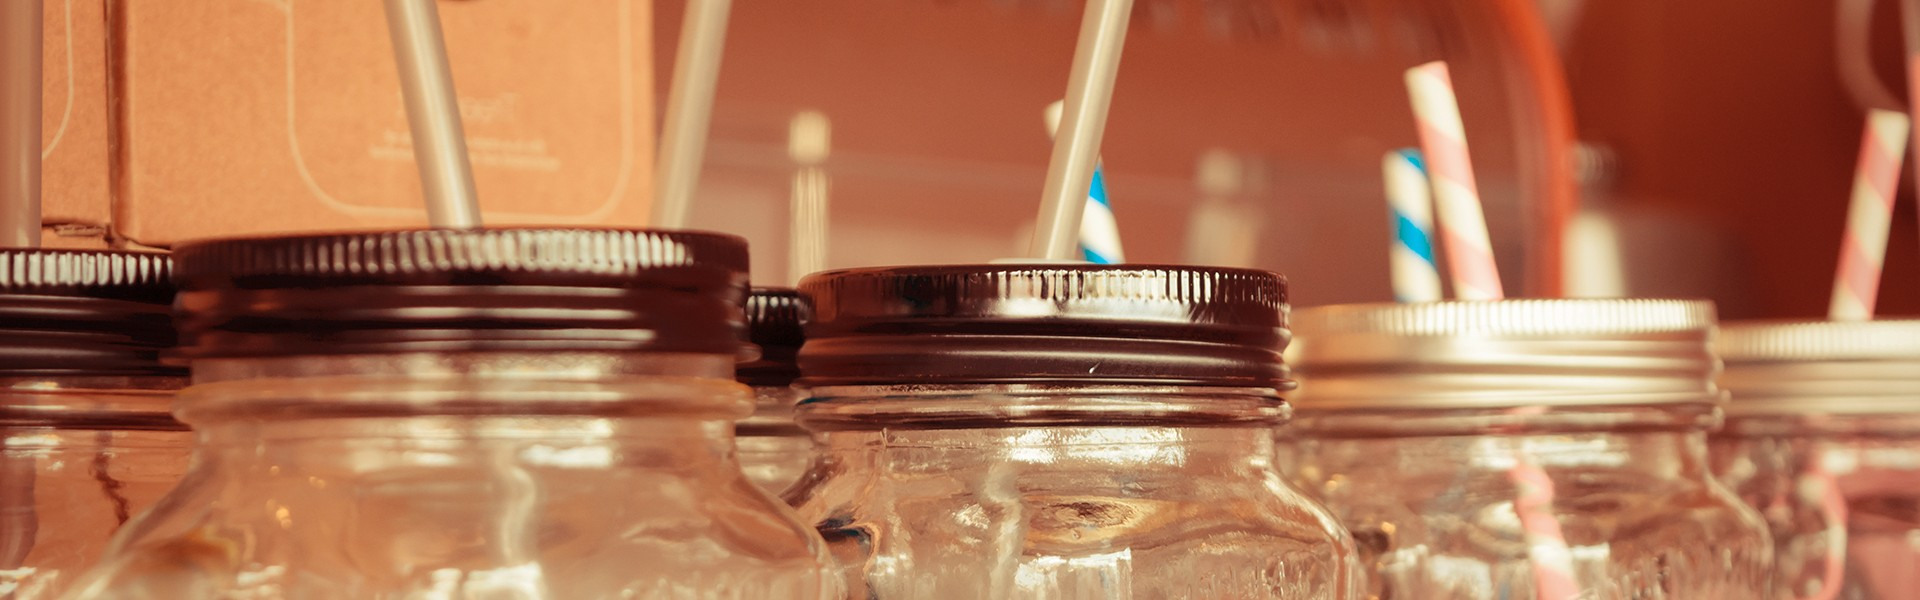 mason jars with lids for drinks